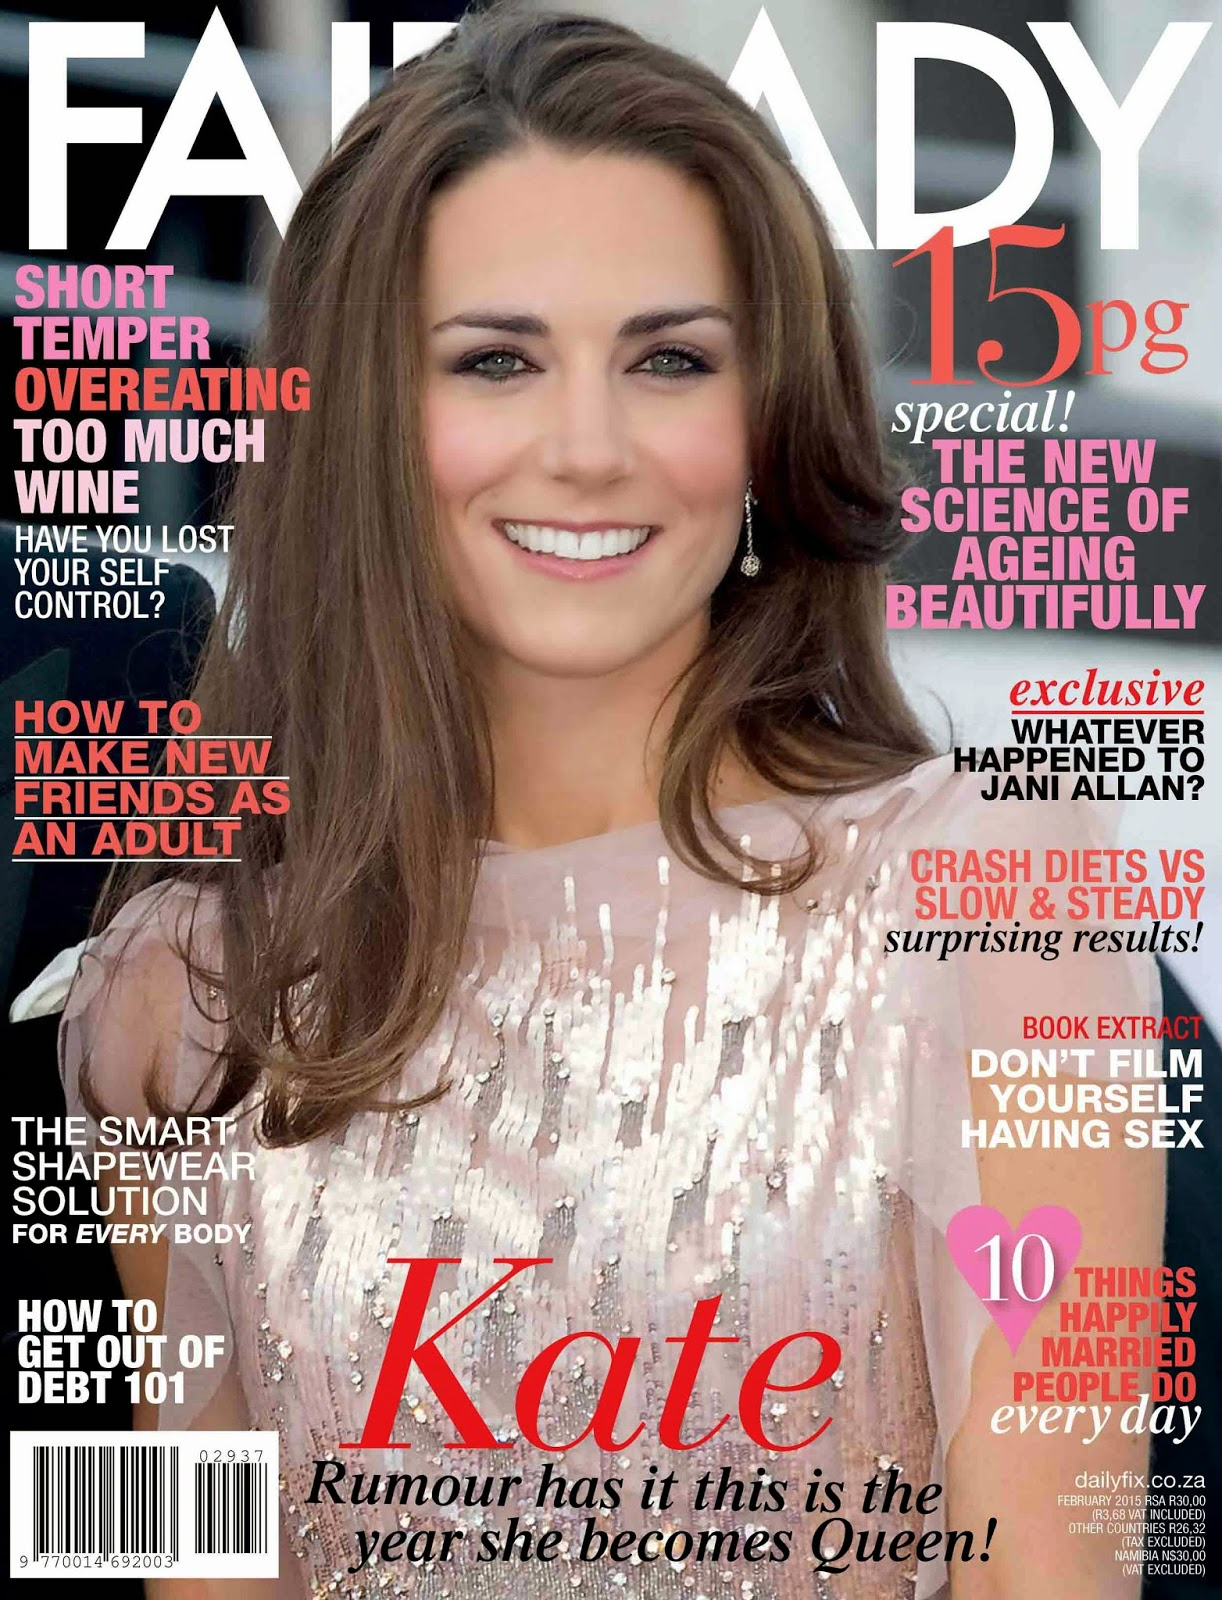 Catherine, Duchess Of Cambridge: Kate Middleton For Fairlady